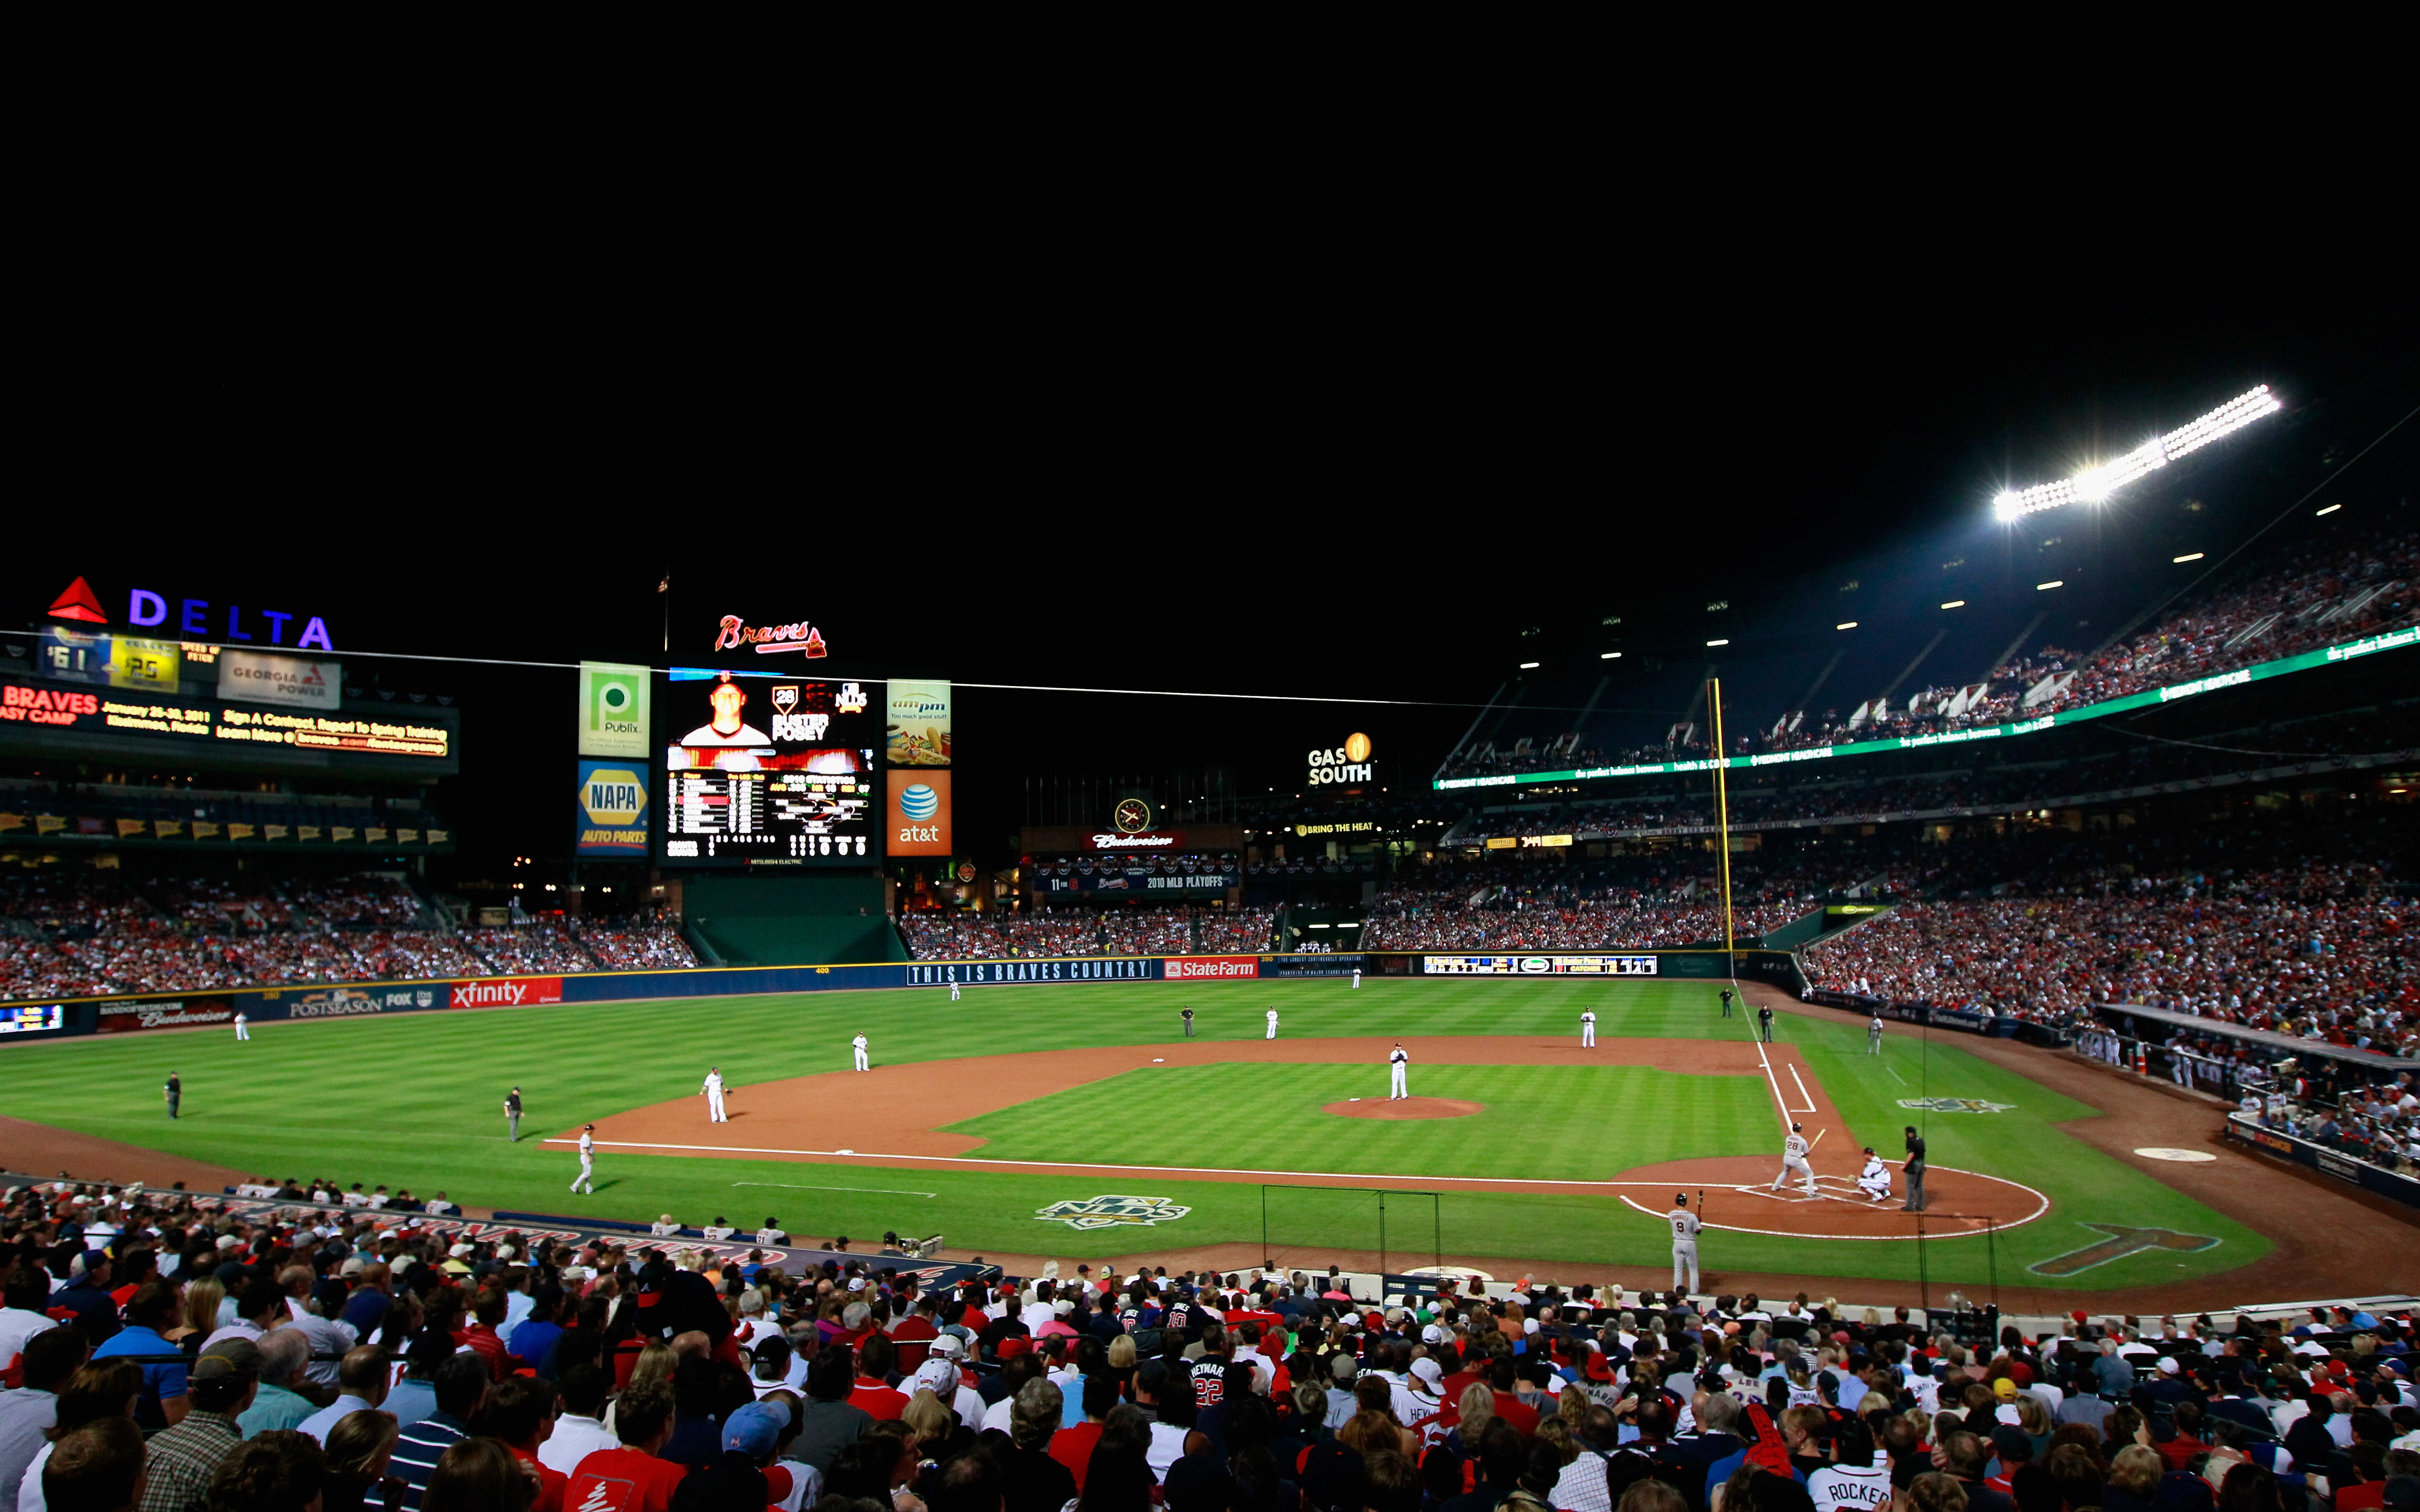 ATLANTA - OCTOBER 11:  A general view of Turner Field during the game between the Atlanta Braves cheer and the San Francisco Giants during Game Four of the NLDS of the 2010 MLB Playoffs at Turner Field on October 11, 2010 in Atlanta, Georgia.  (Photo by K